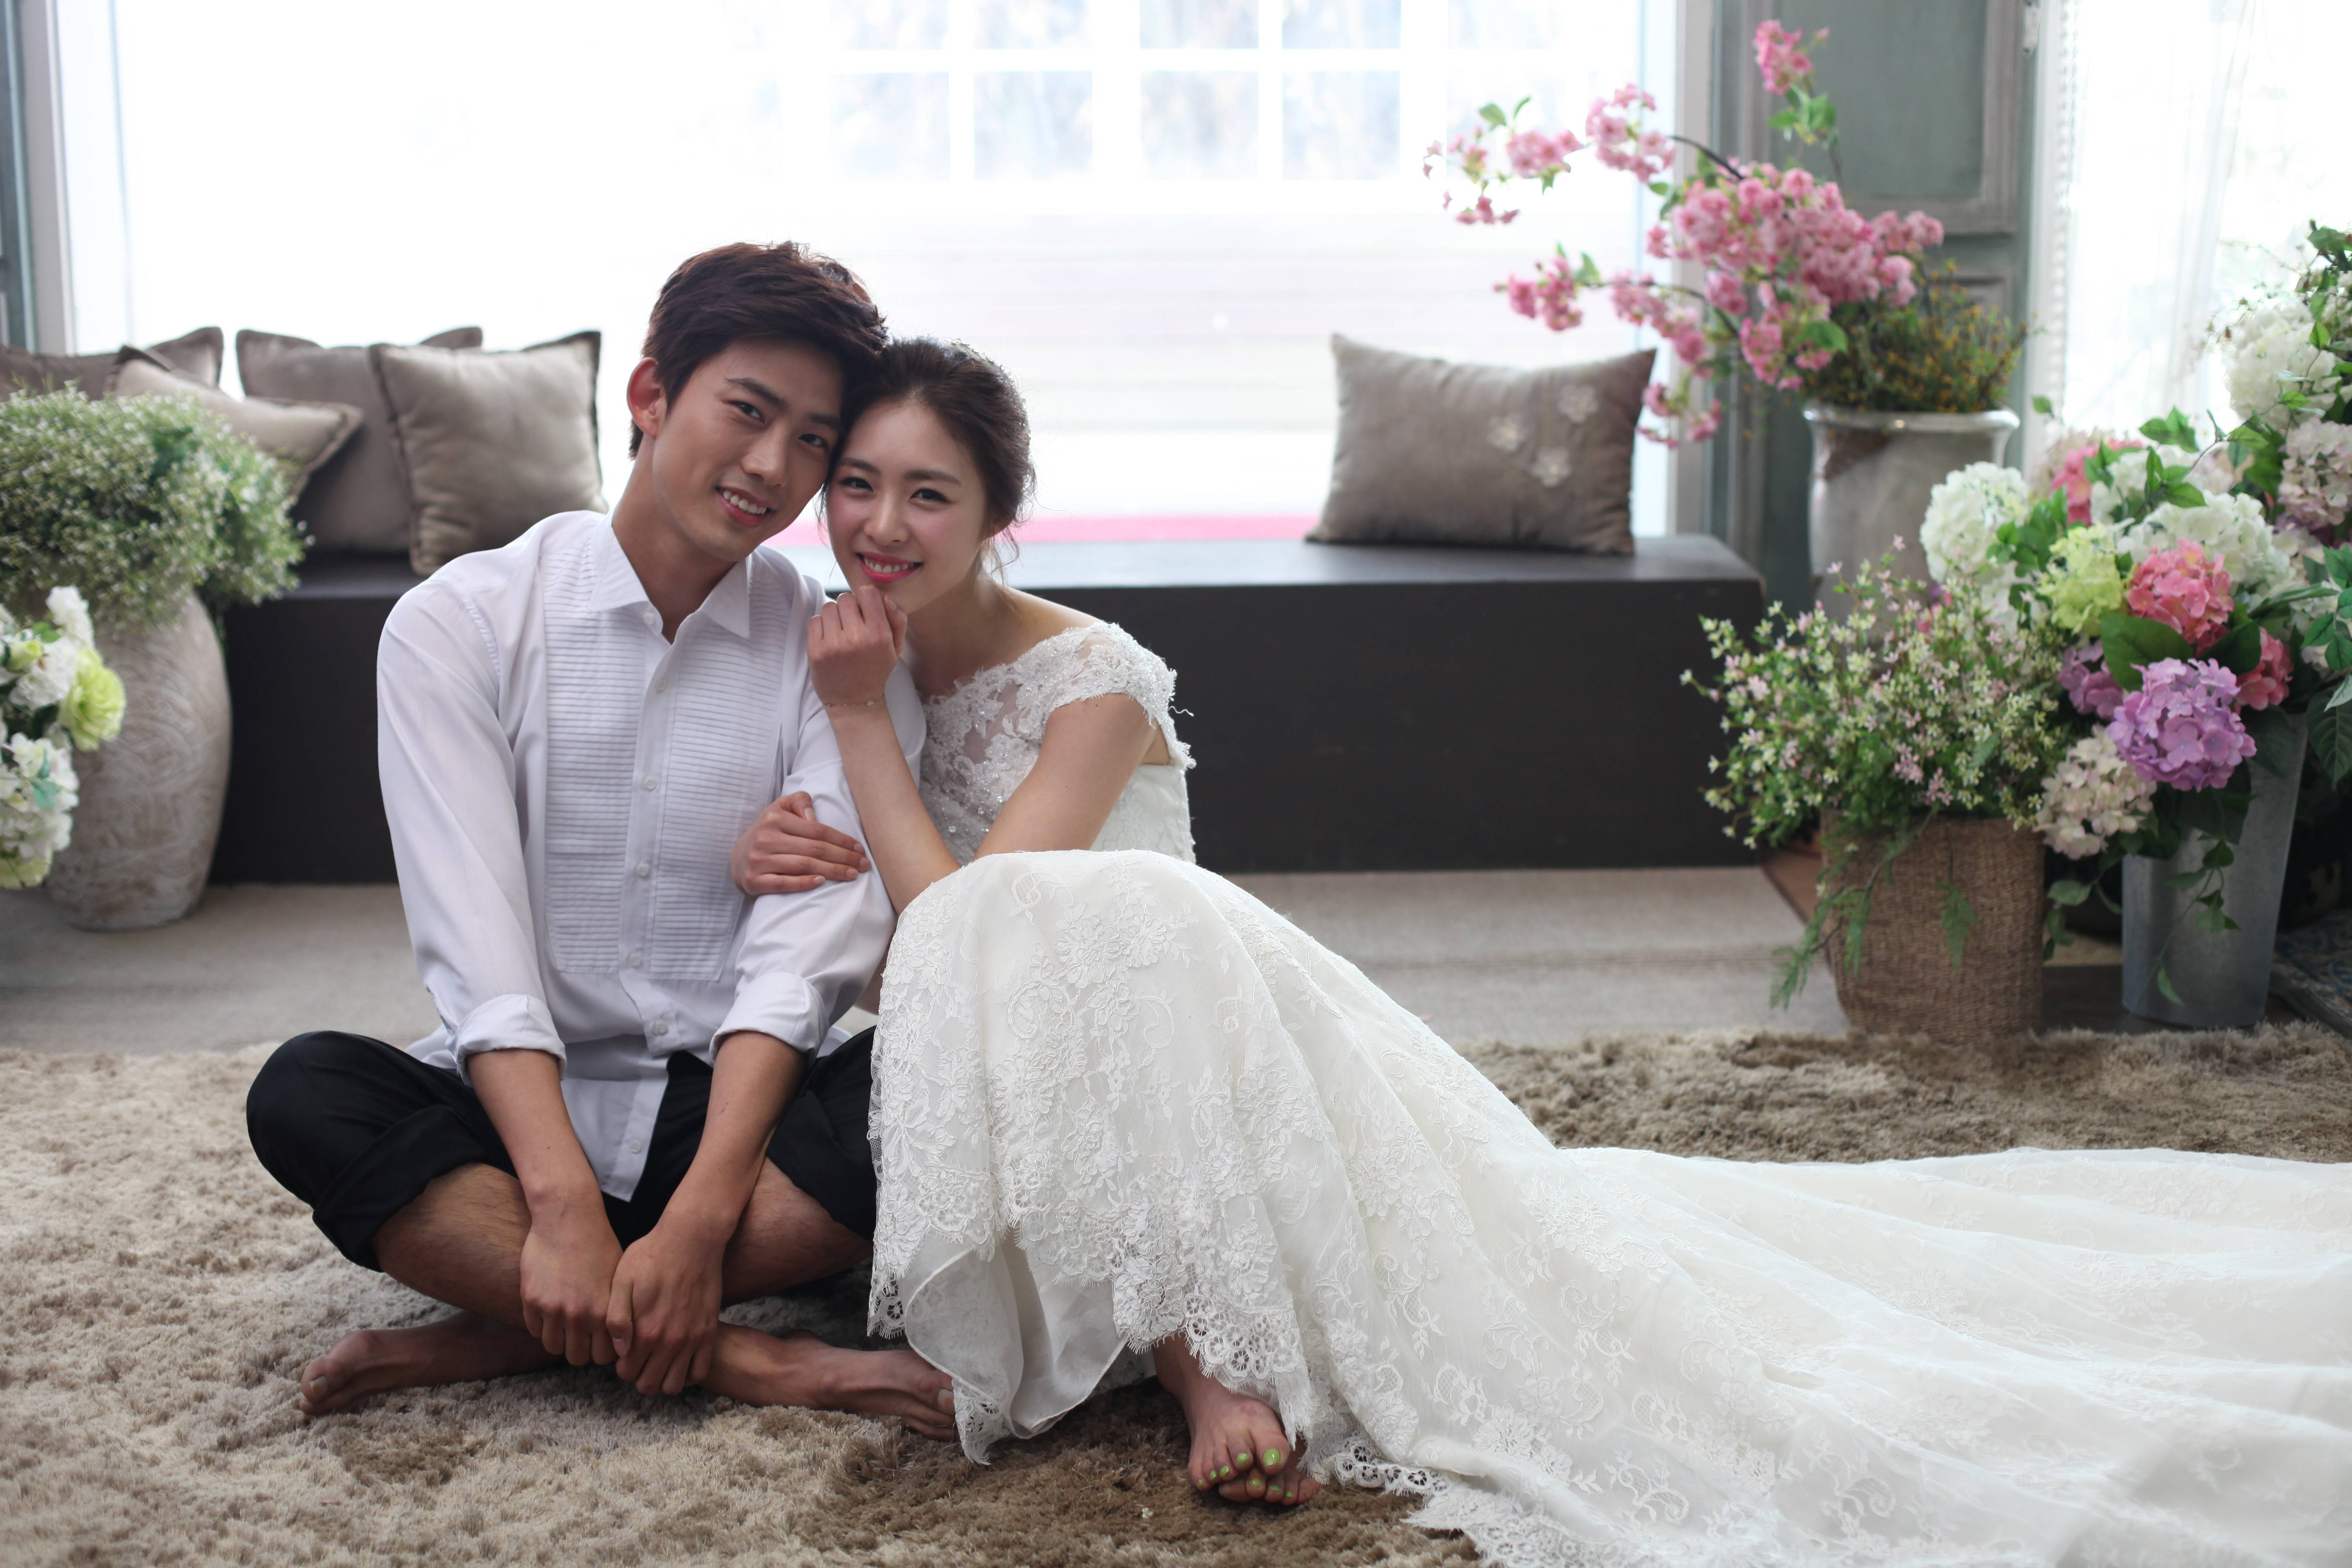 Yeon woo jin marriage not dating cute picture 1